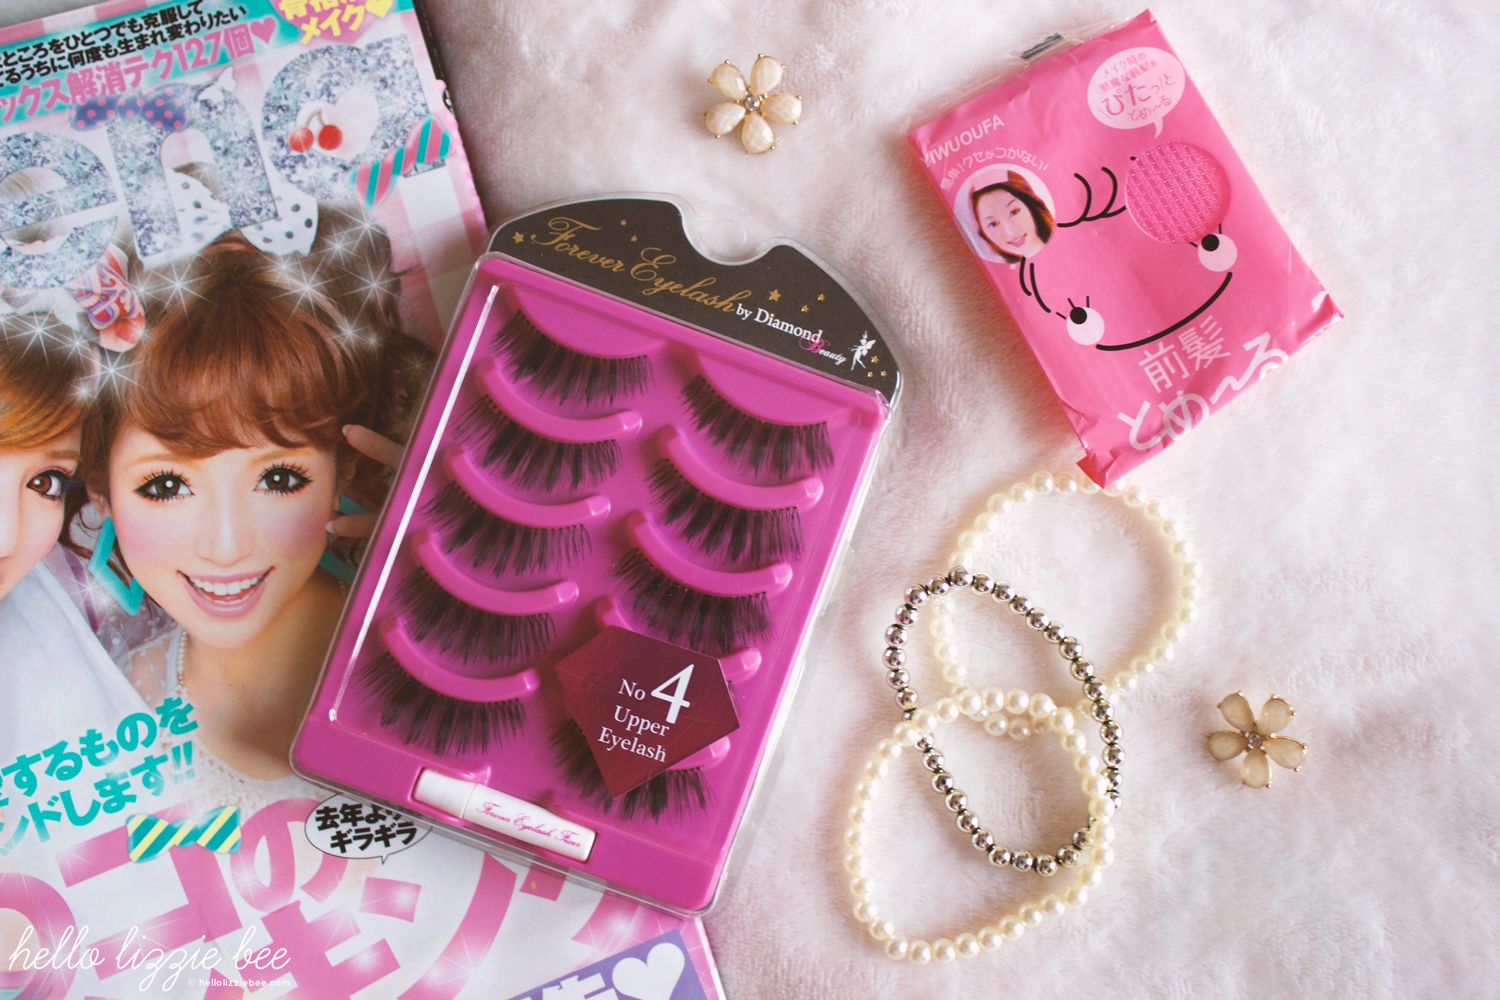 diamond lash, gyaru lashes, false lashes